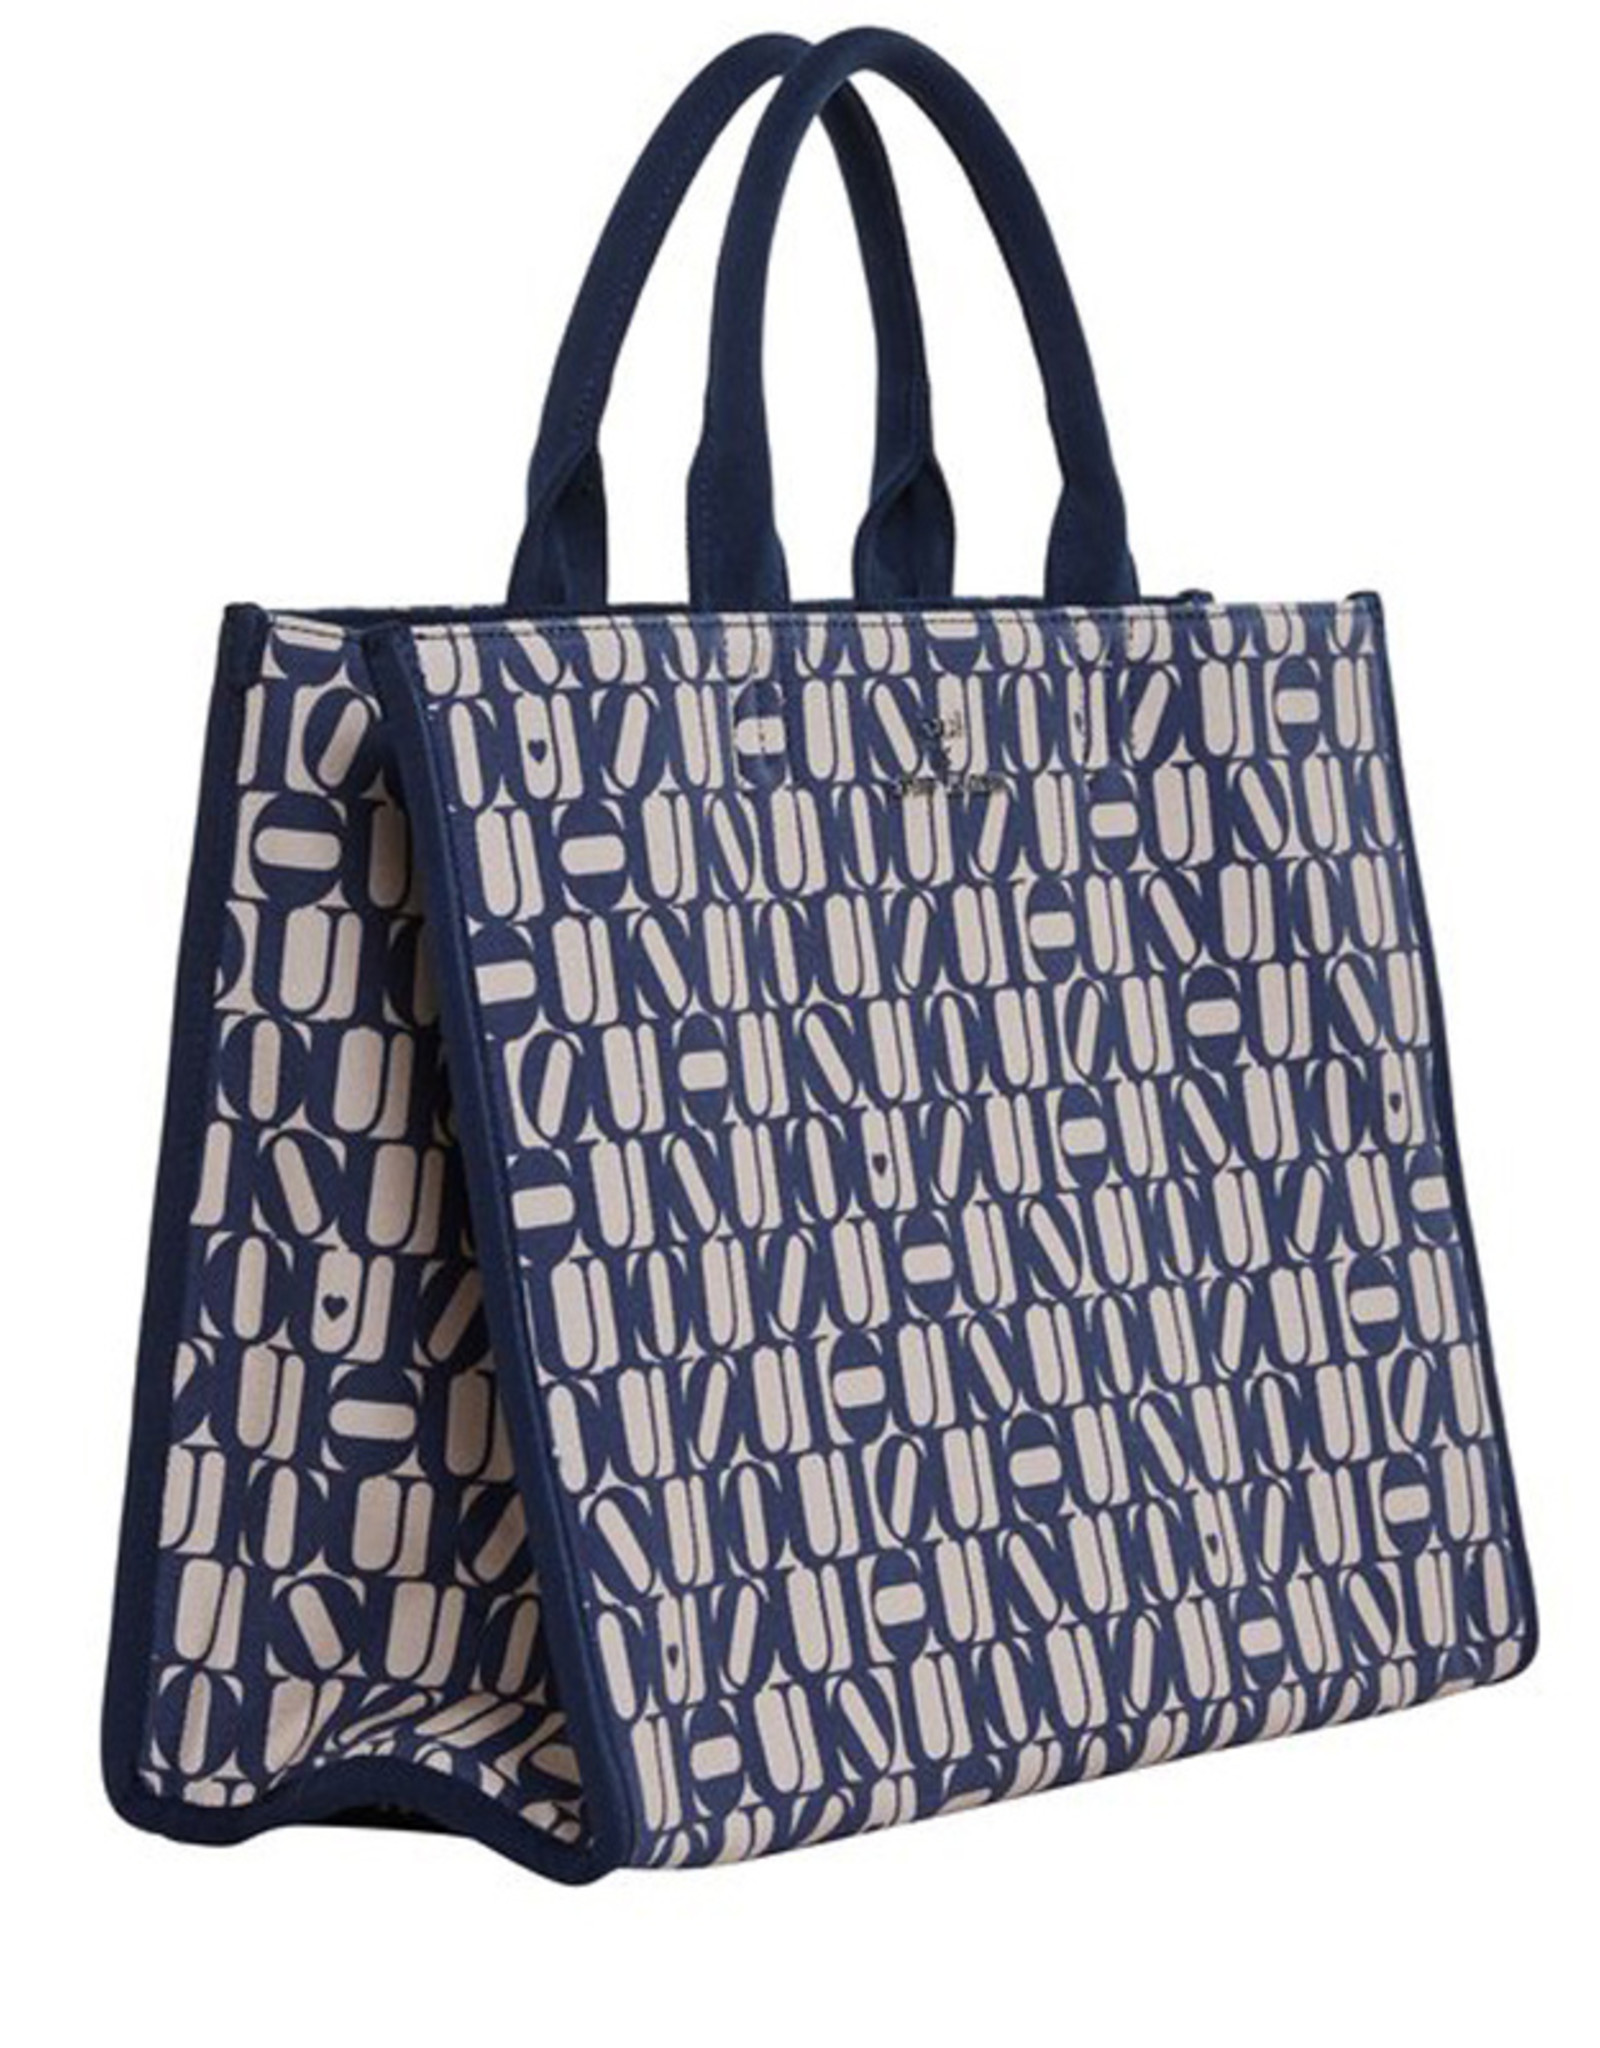 Ouí Sac fashionista navy